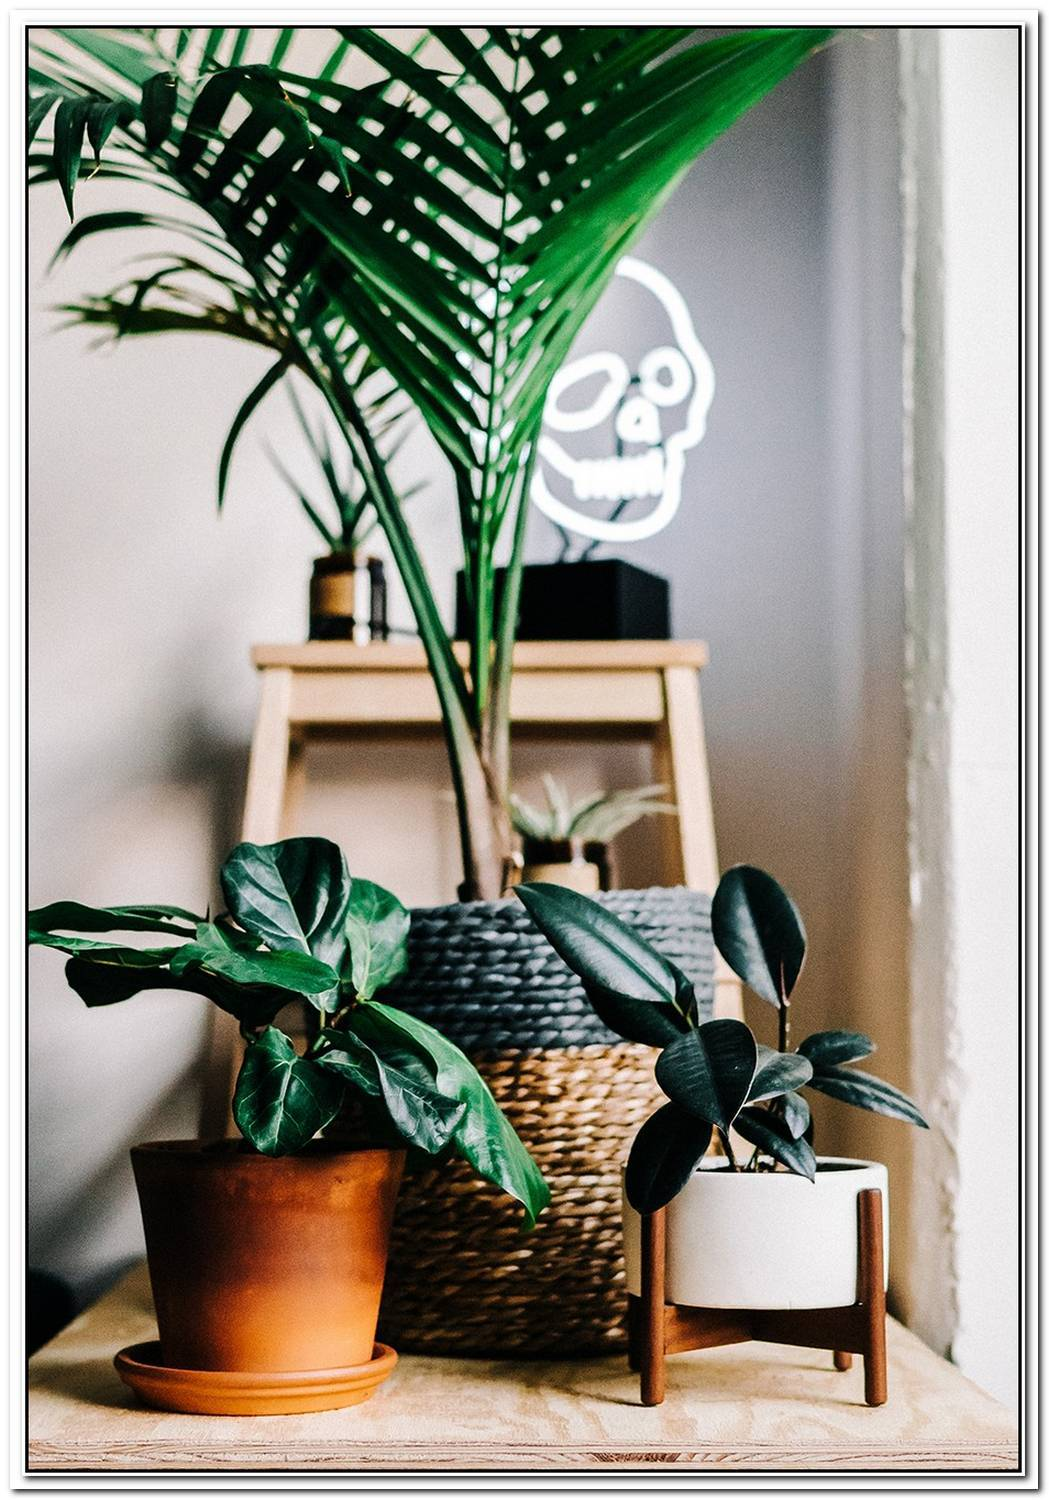 Benefits Of Adding Plants And Greenery To Your Space